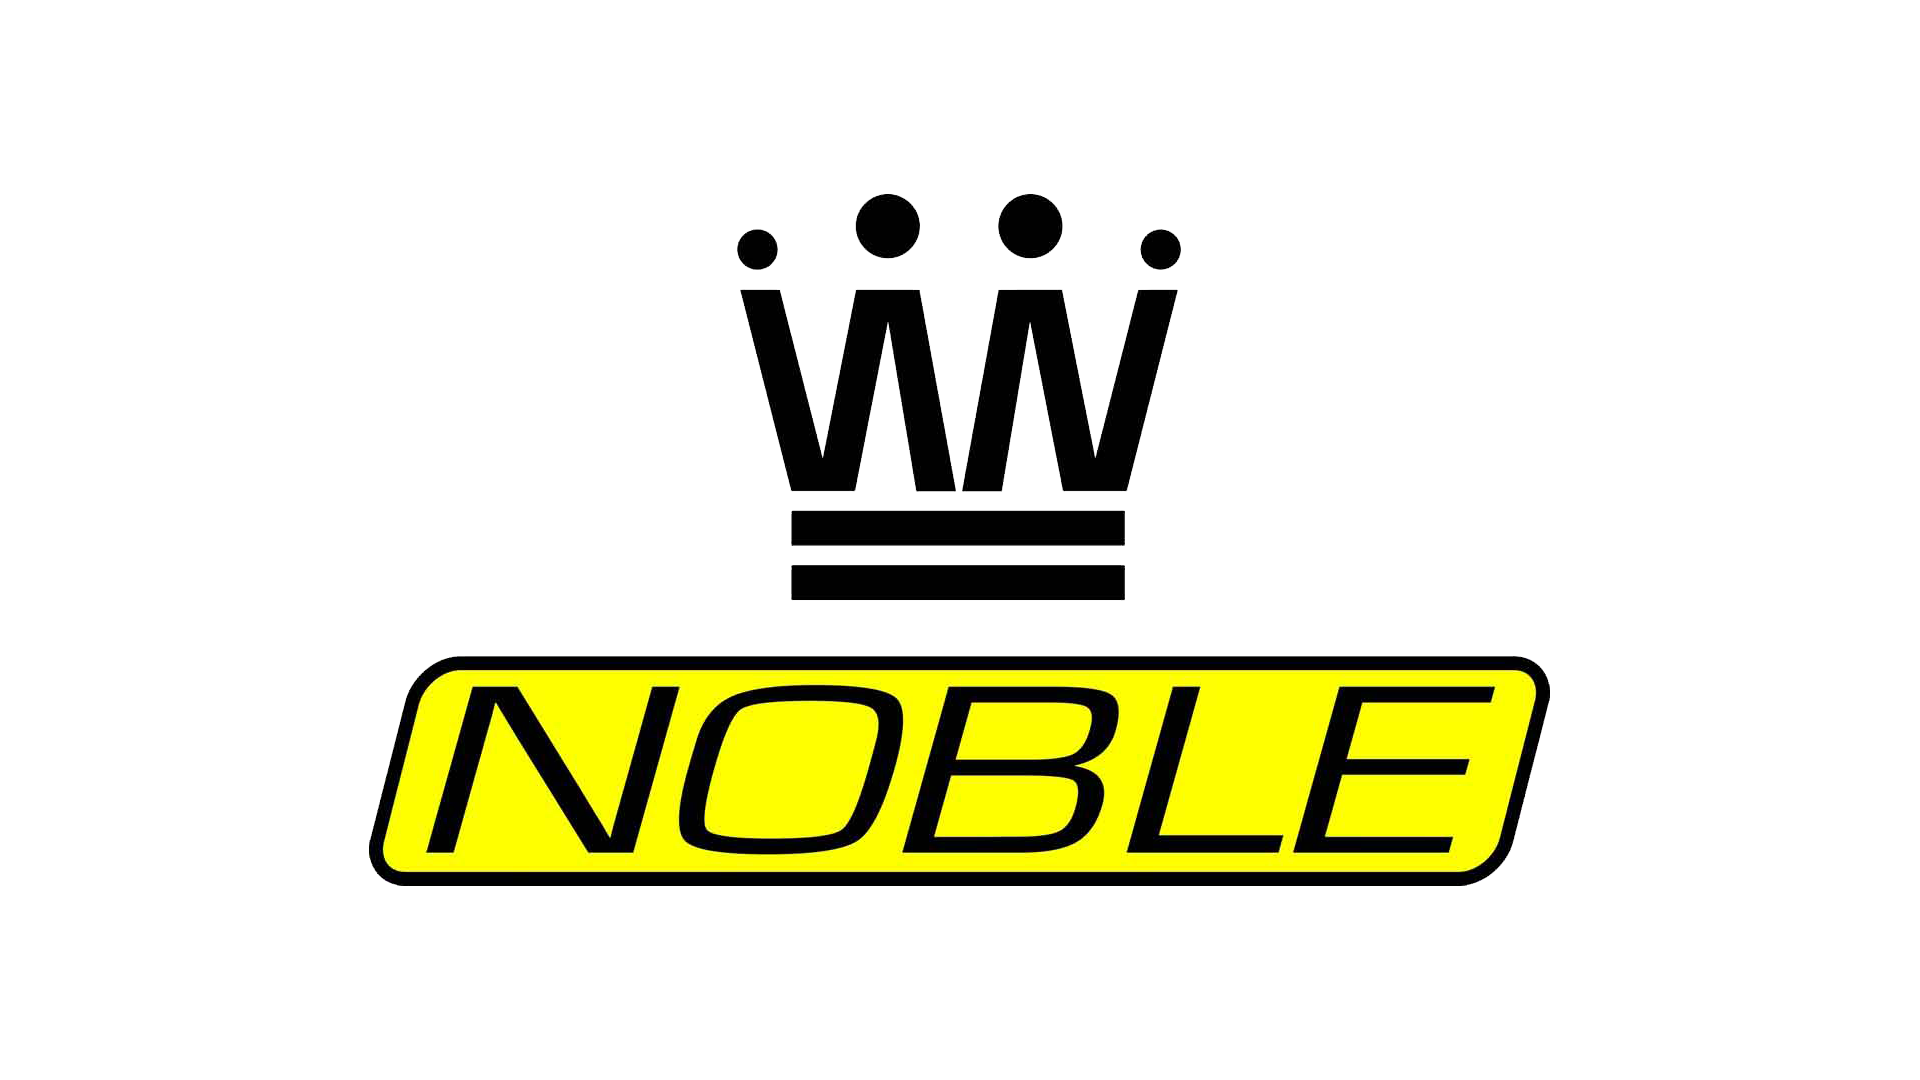 Noble-logo-1920x1080.png